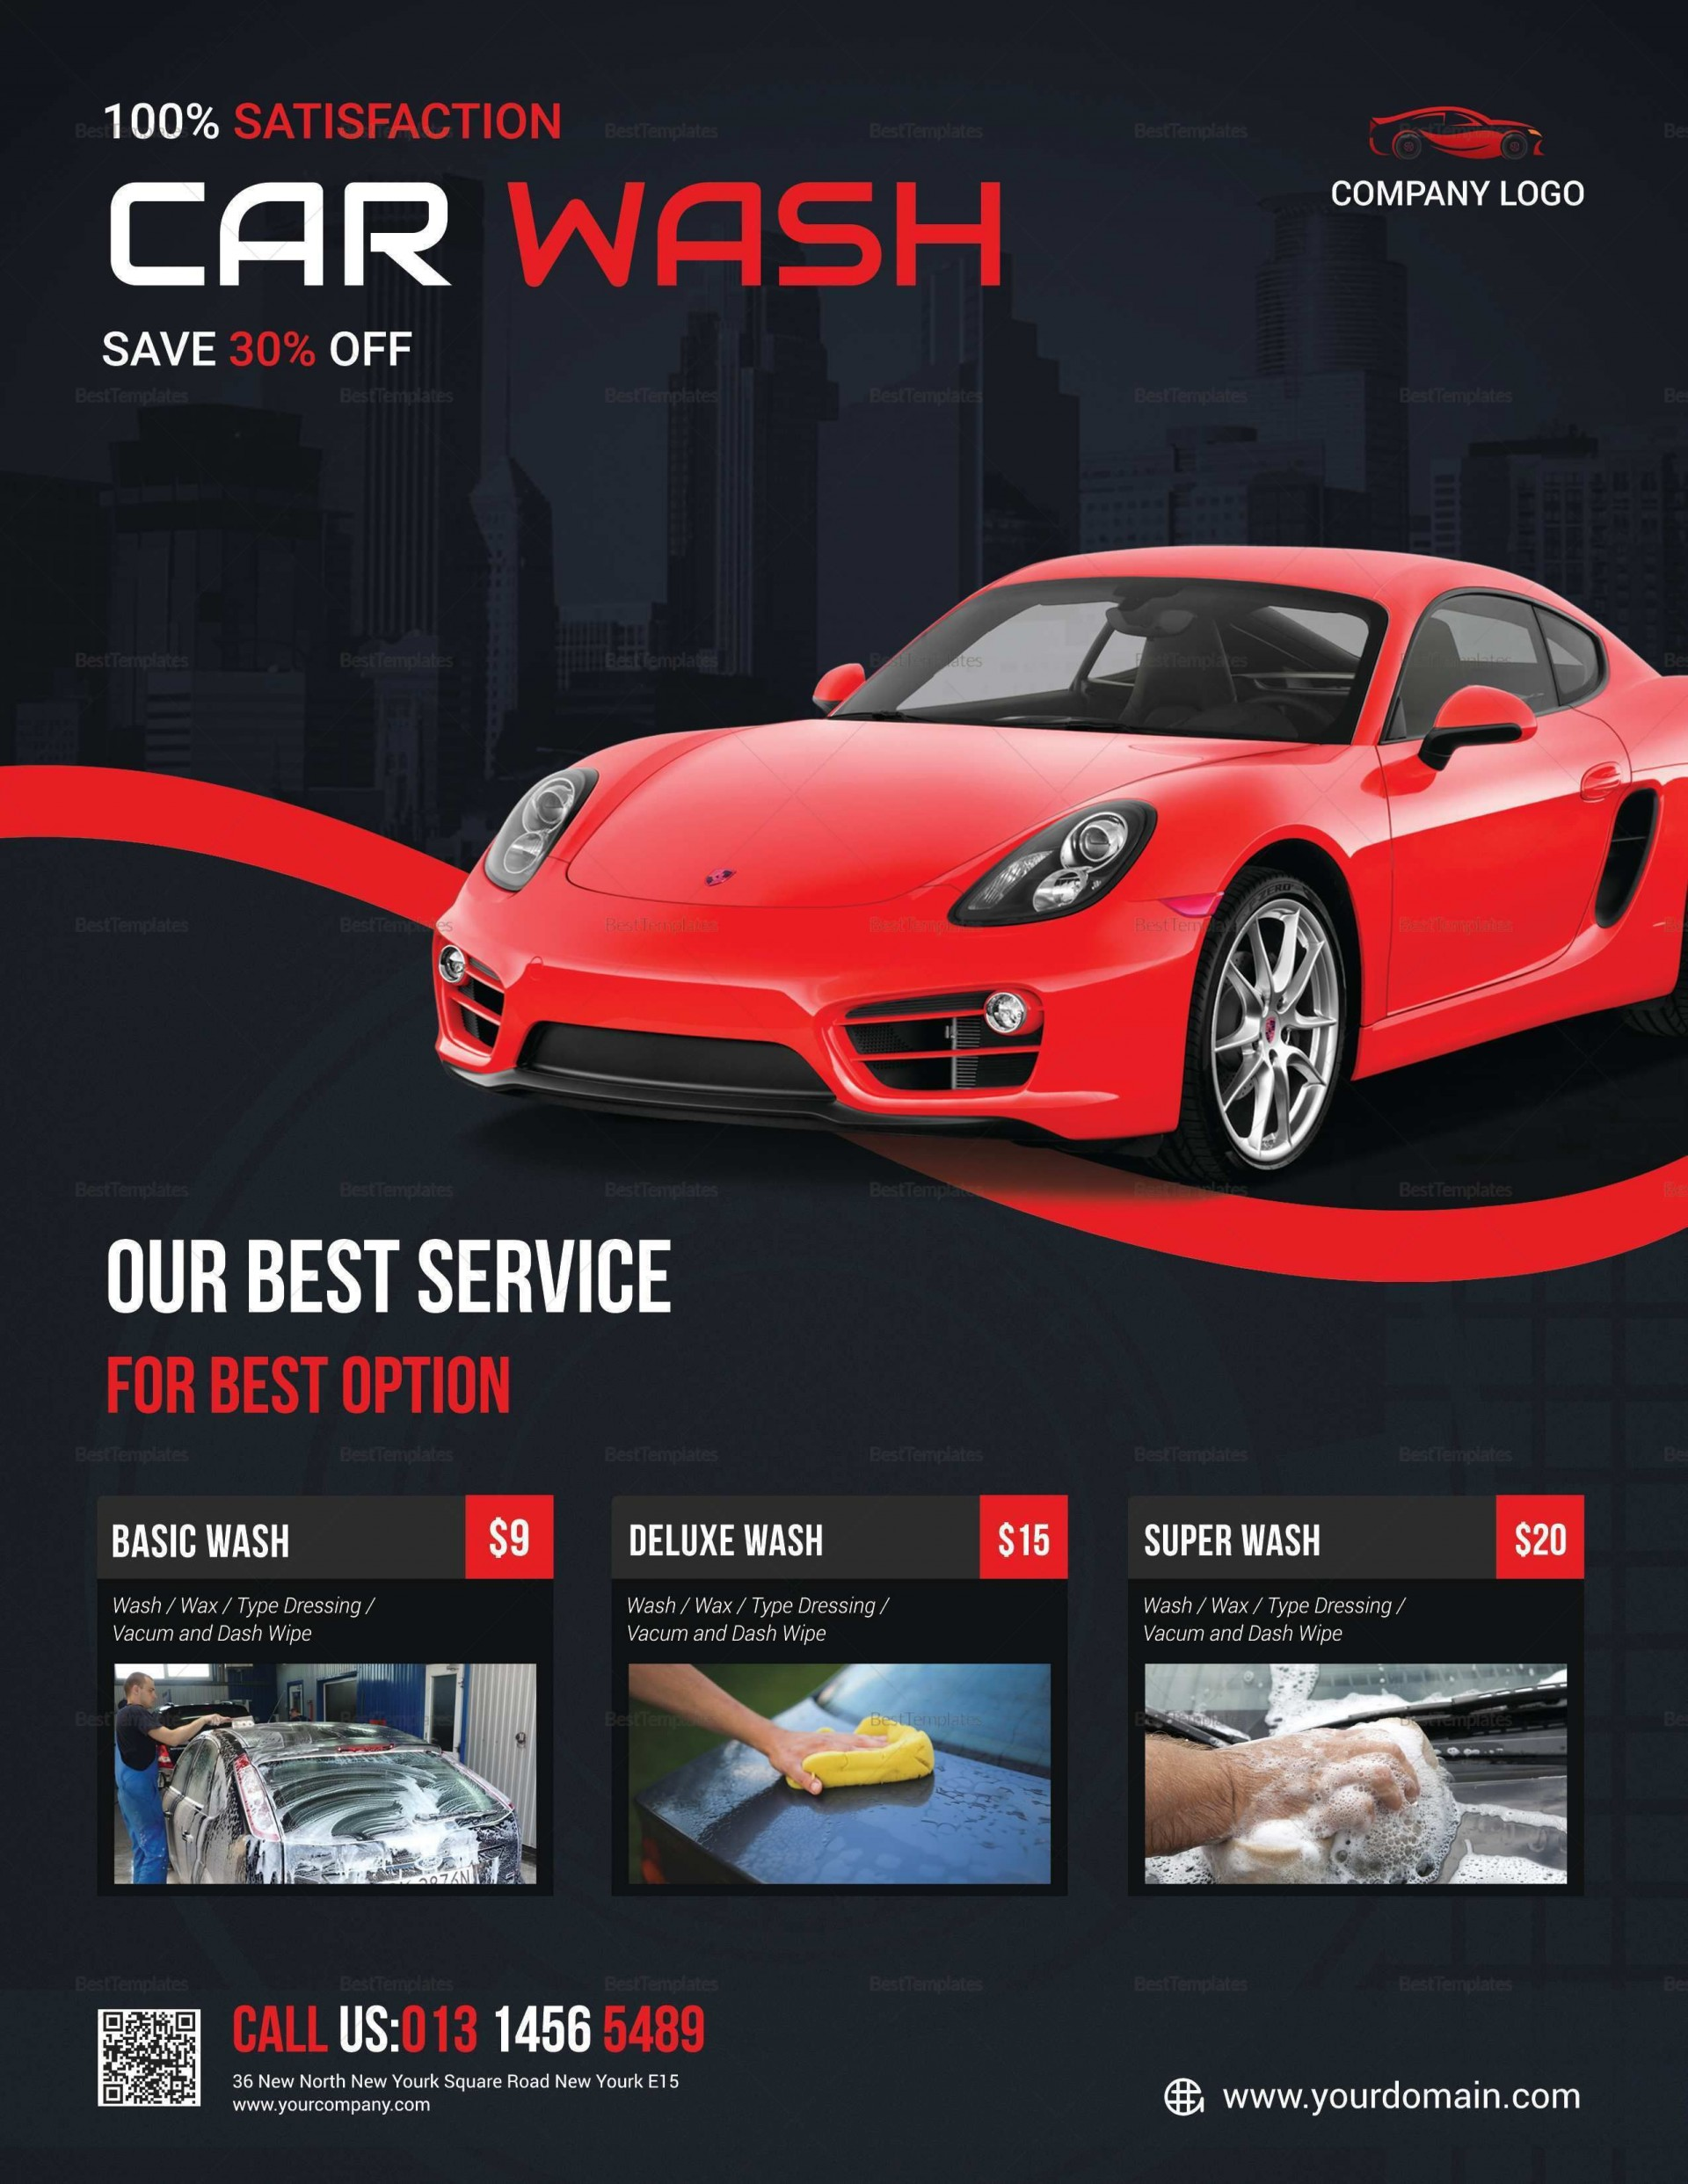 002 Archaicawful Car Wash Flyer Template Example  Free Fundraiser Download1920